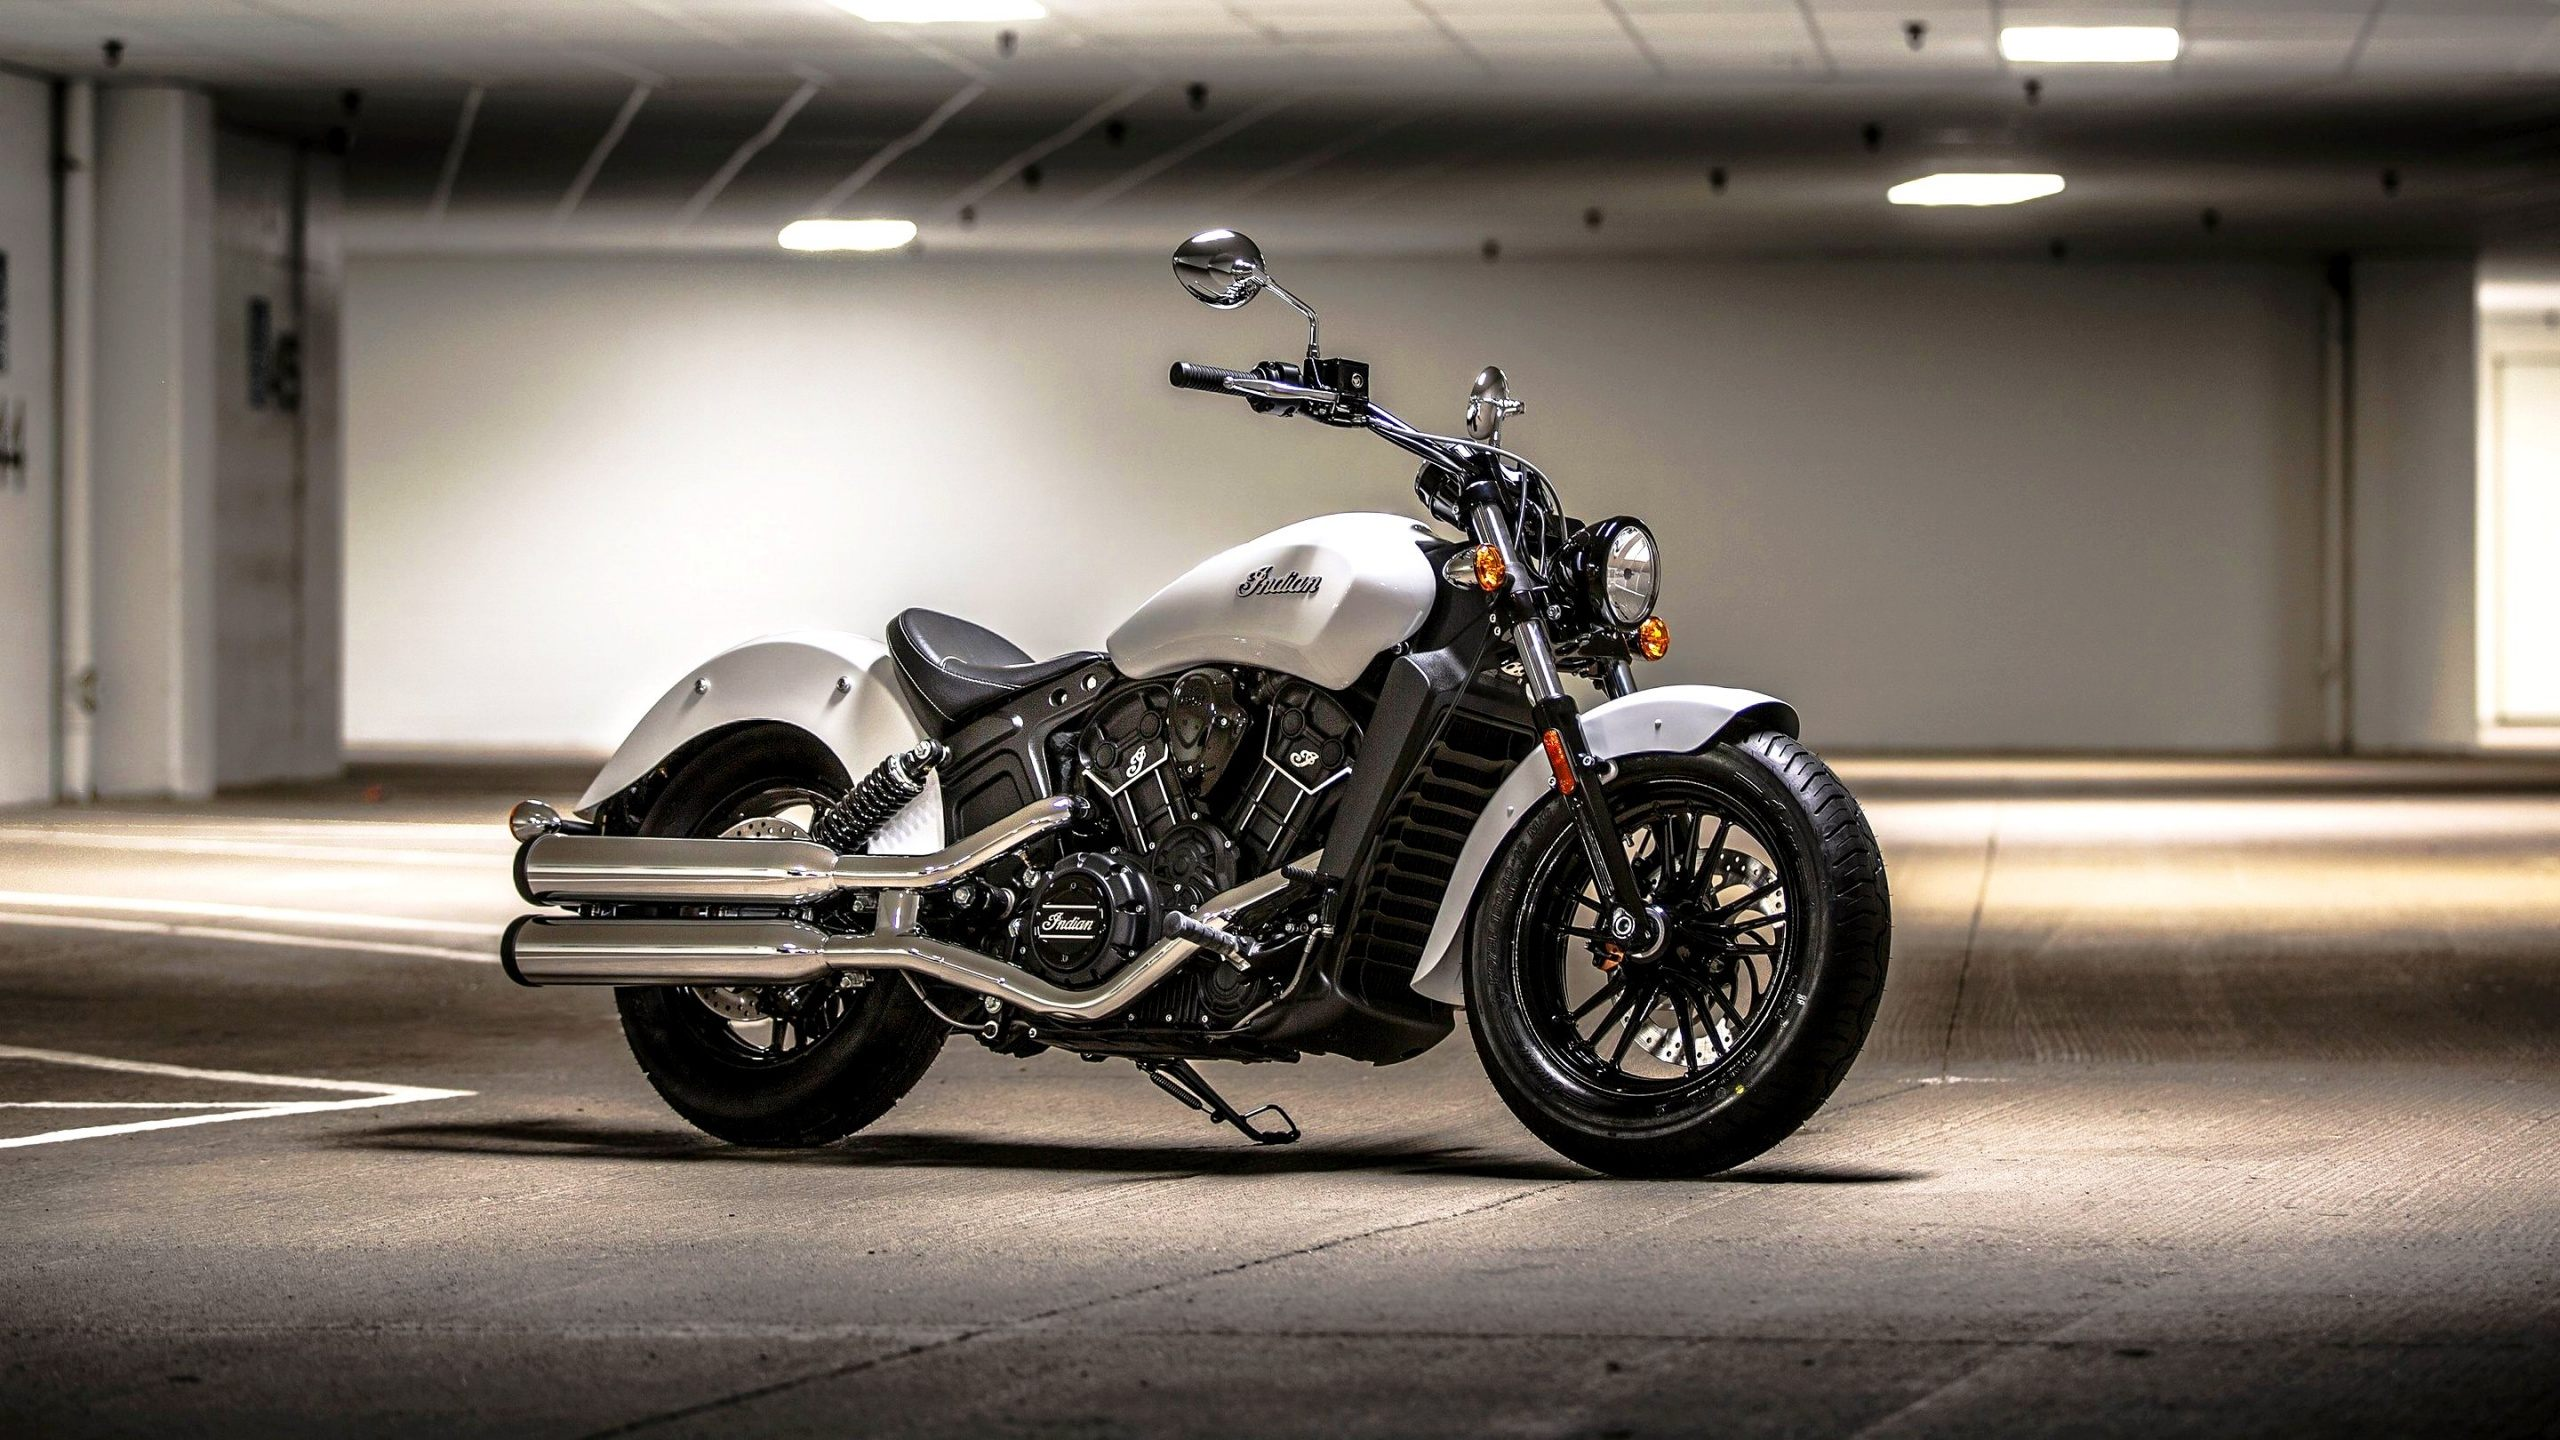 download Indian Motorcycle Wallpaper [2560x1440] for your 2560x1440